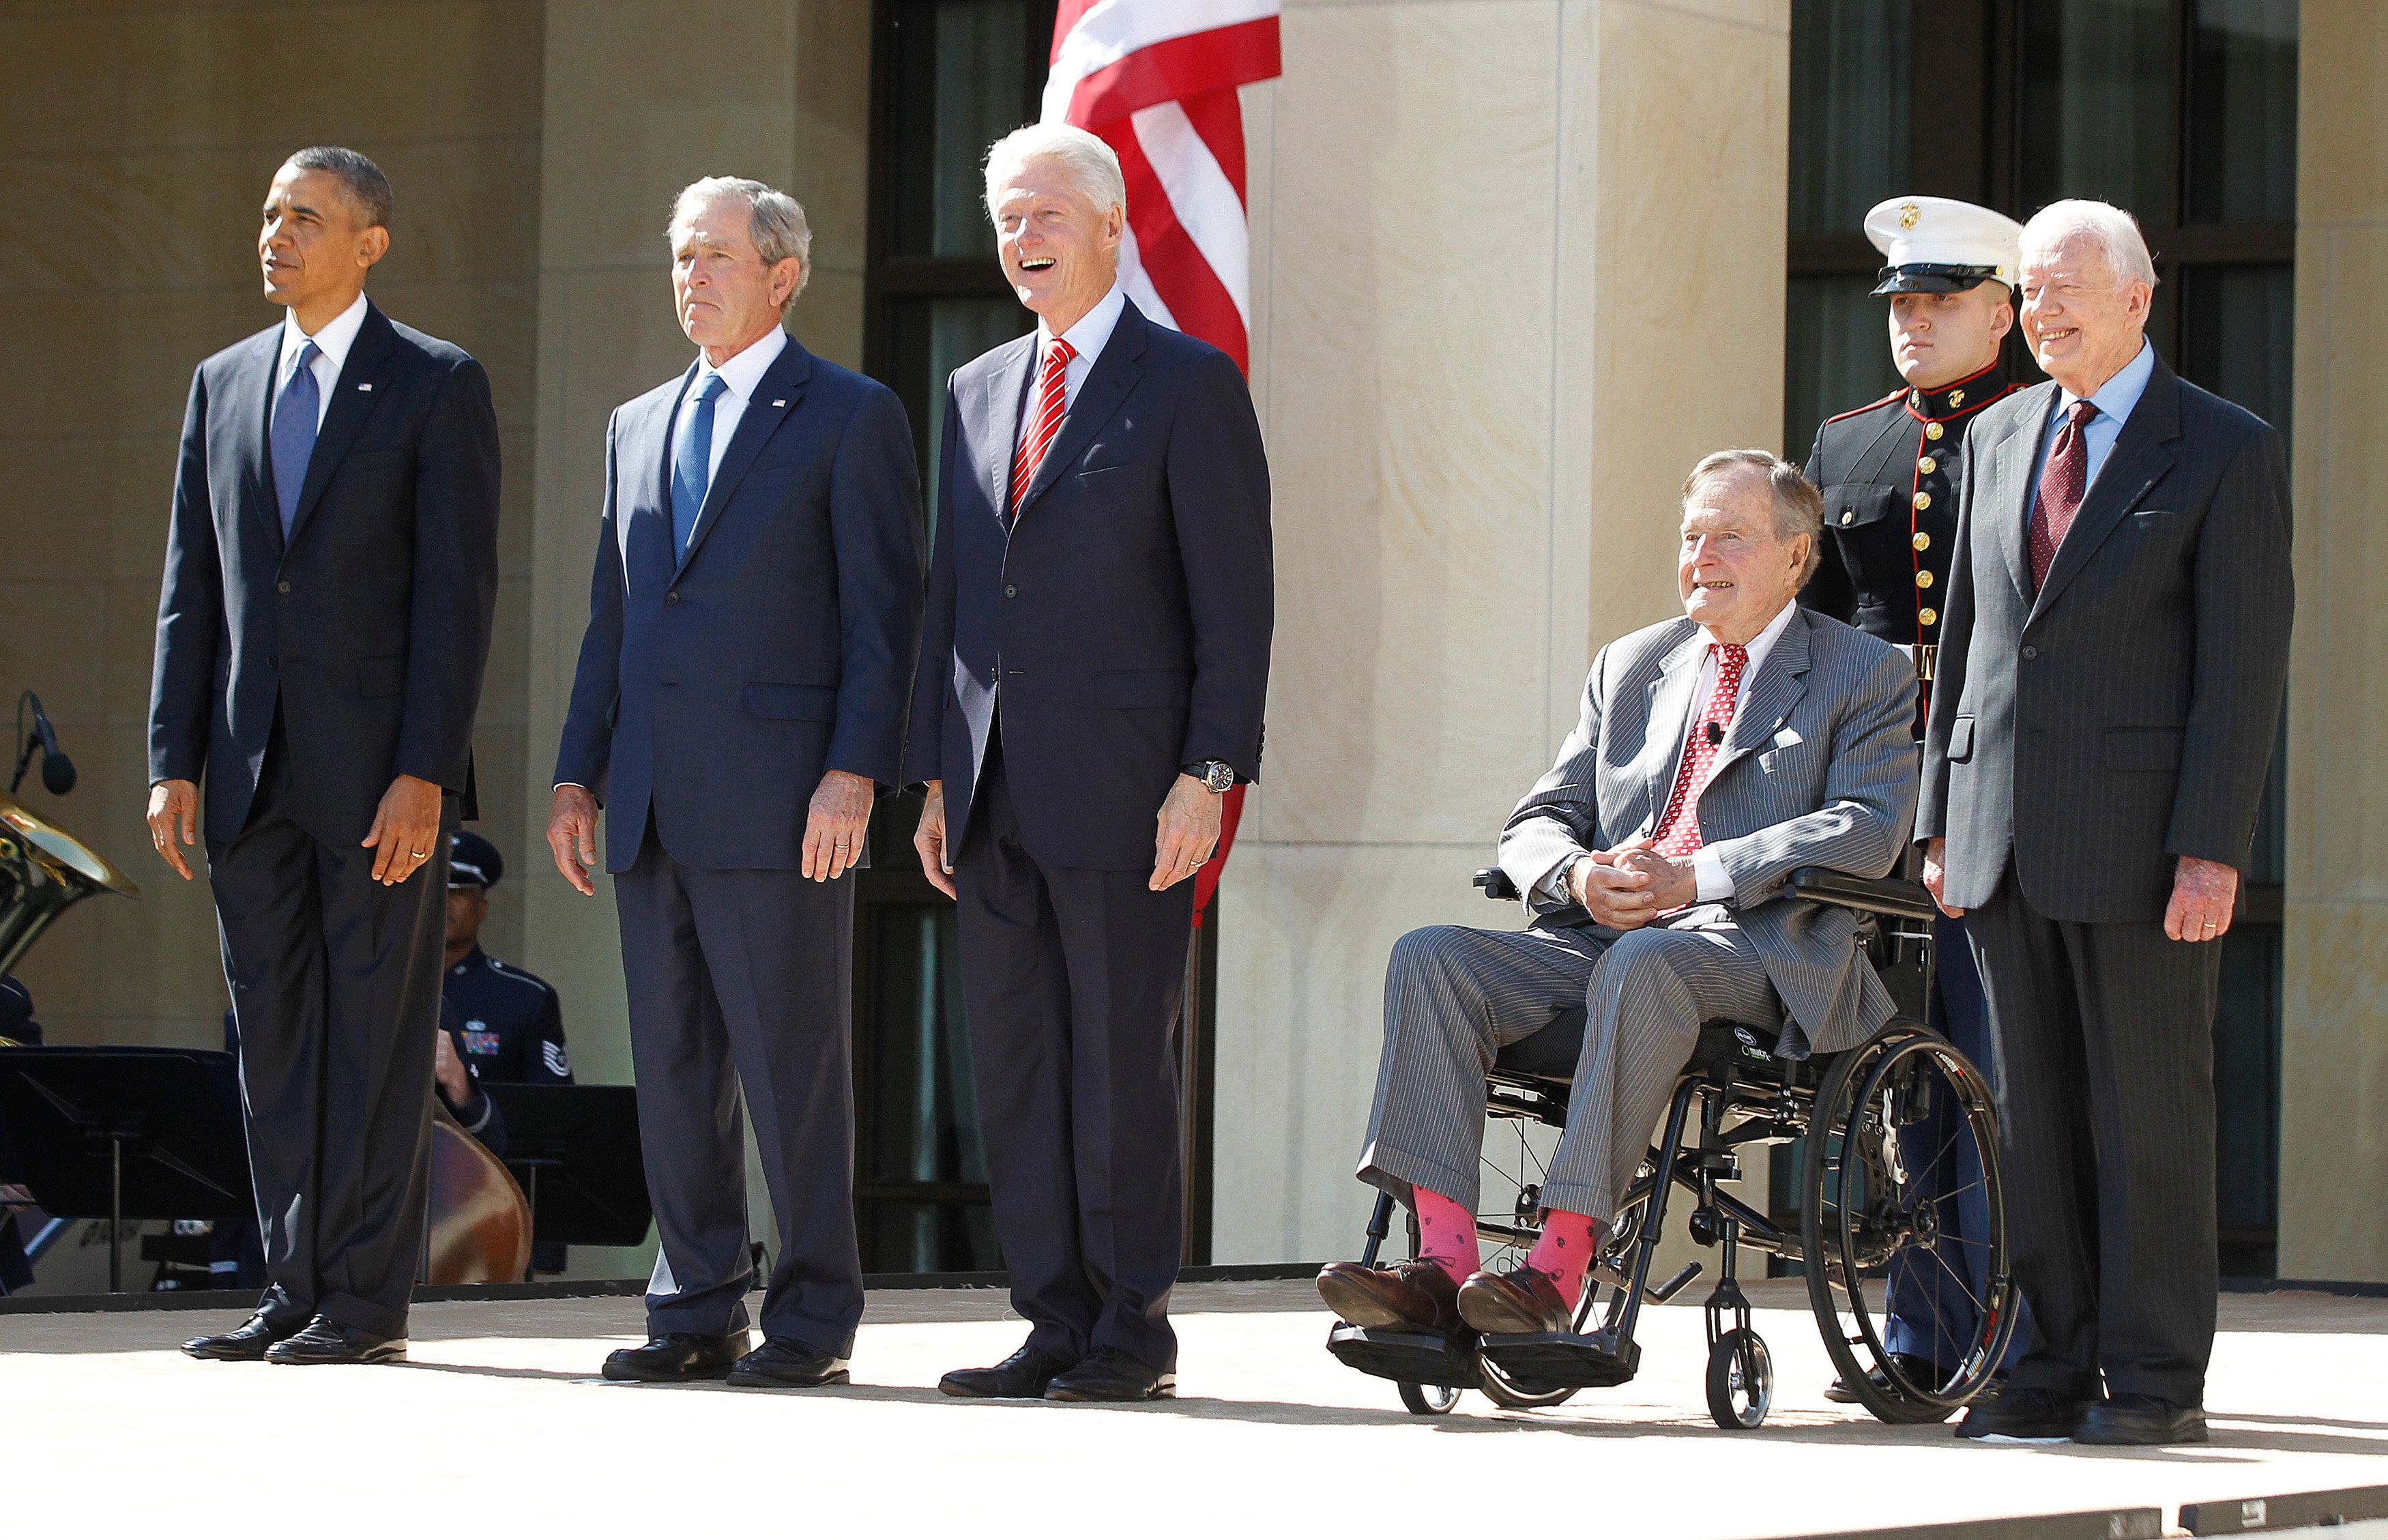 (From L - R) U.S. President Barack Obama stands alongside former presidents George W. Bush, Bill Clinton, George H.W. Bush and Jimmy Carter as they attend the dedication ceremony for the George W. Bush Presidential Center in Dallas, April 25, 2013. Obama is in Texas to stand shoulder-to-shoulder with former President George W. Bush in what could serve as a powerful reminder of the ongoing struggle against terrorism, from the Sept. 11 attacks to the Boston Marathon bombings. REUTERS/Jason Reed (UNITED STATES - Tags: POLITICS)